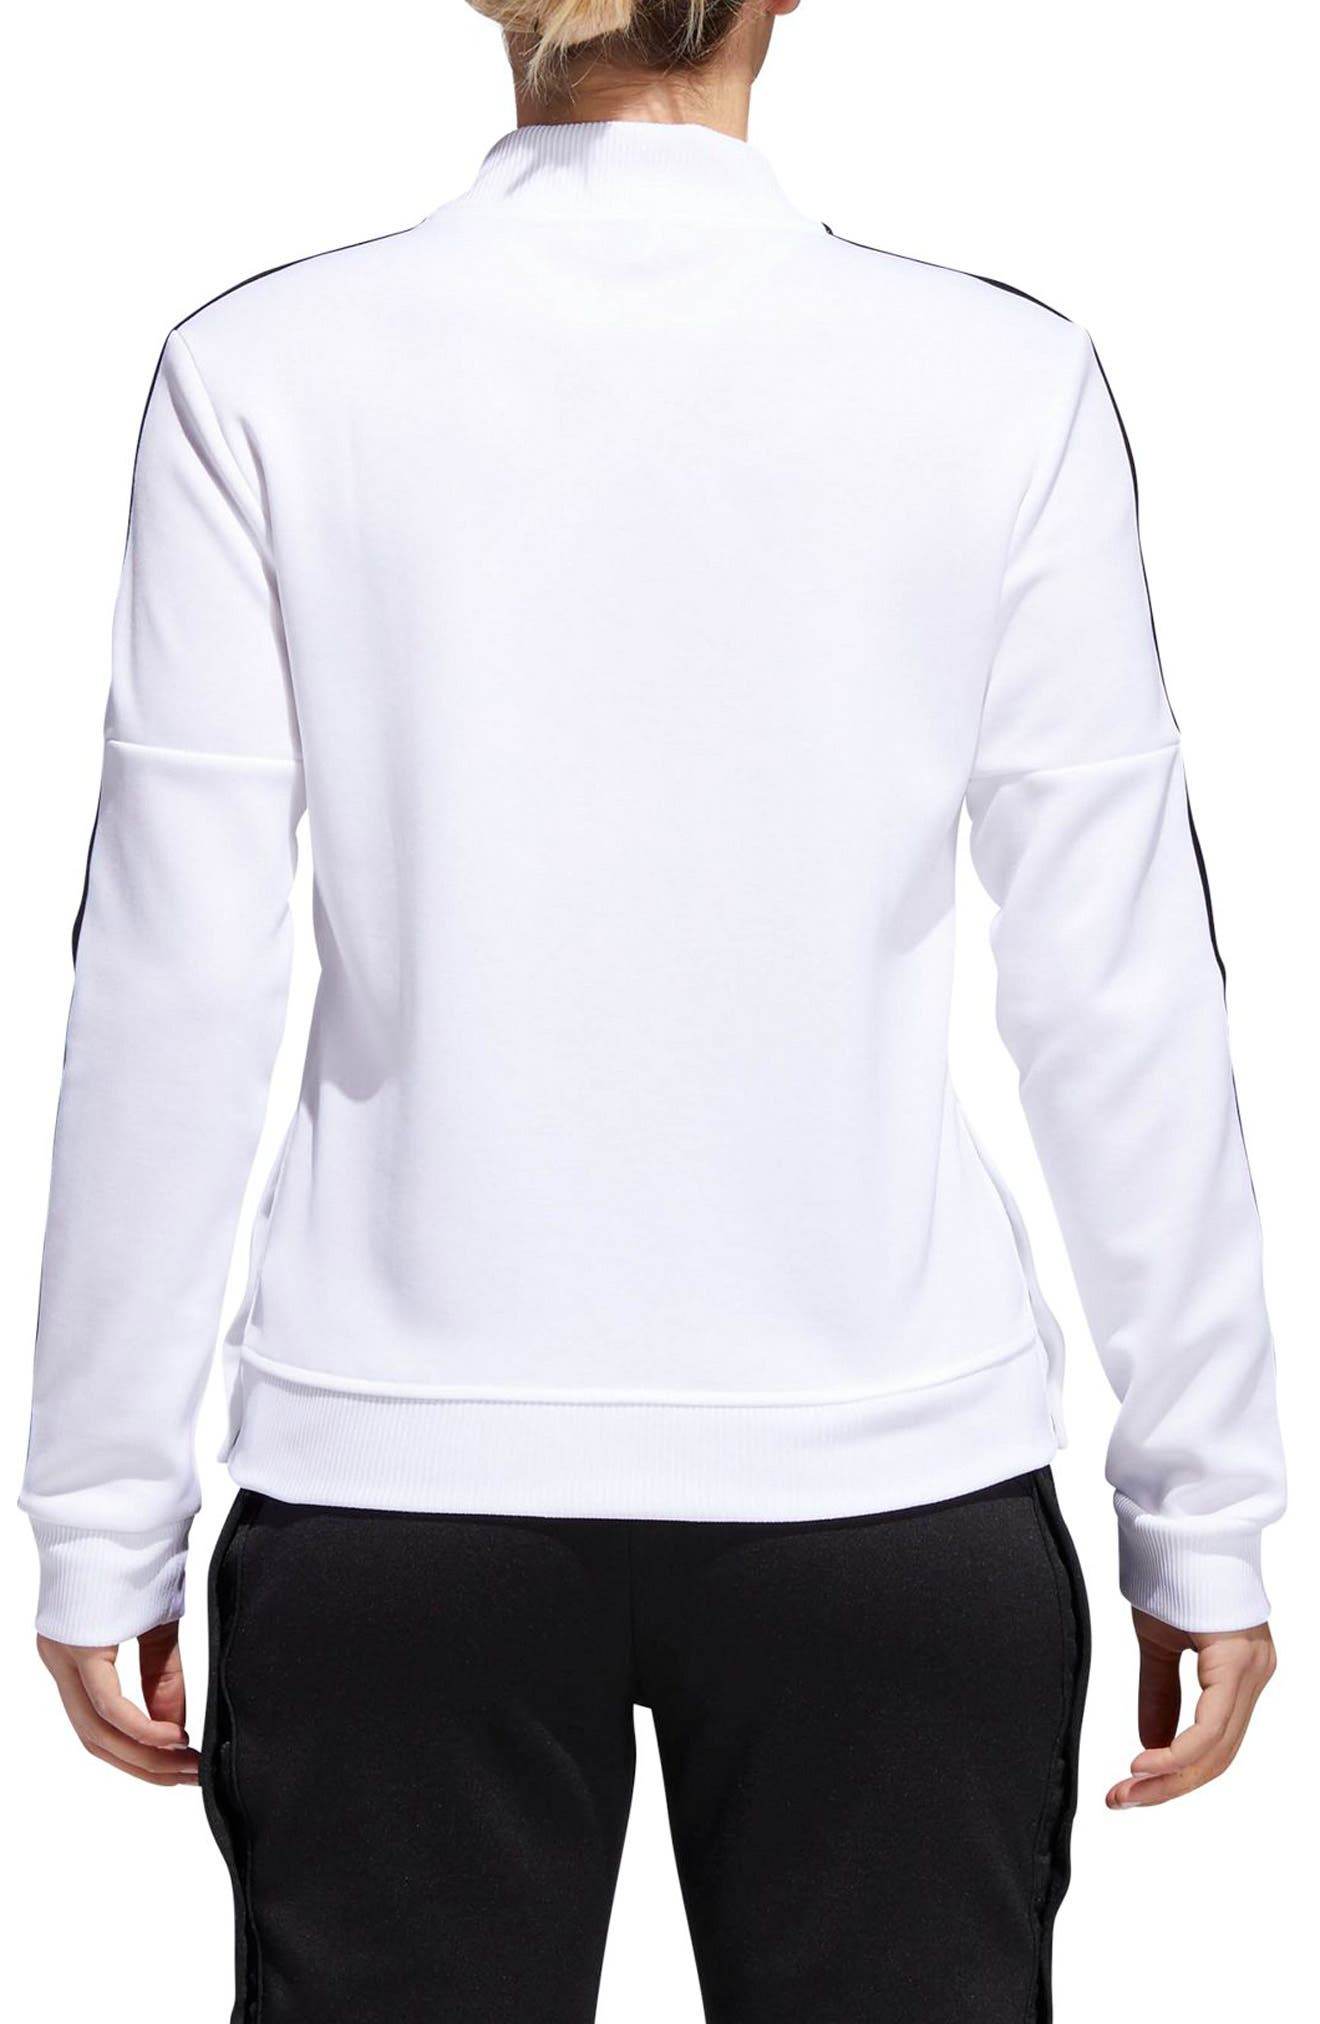 Tricot Snap It Track Jacket,                             Alternate thumbnail 2, color,                             100